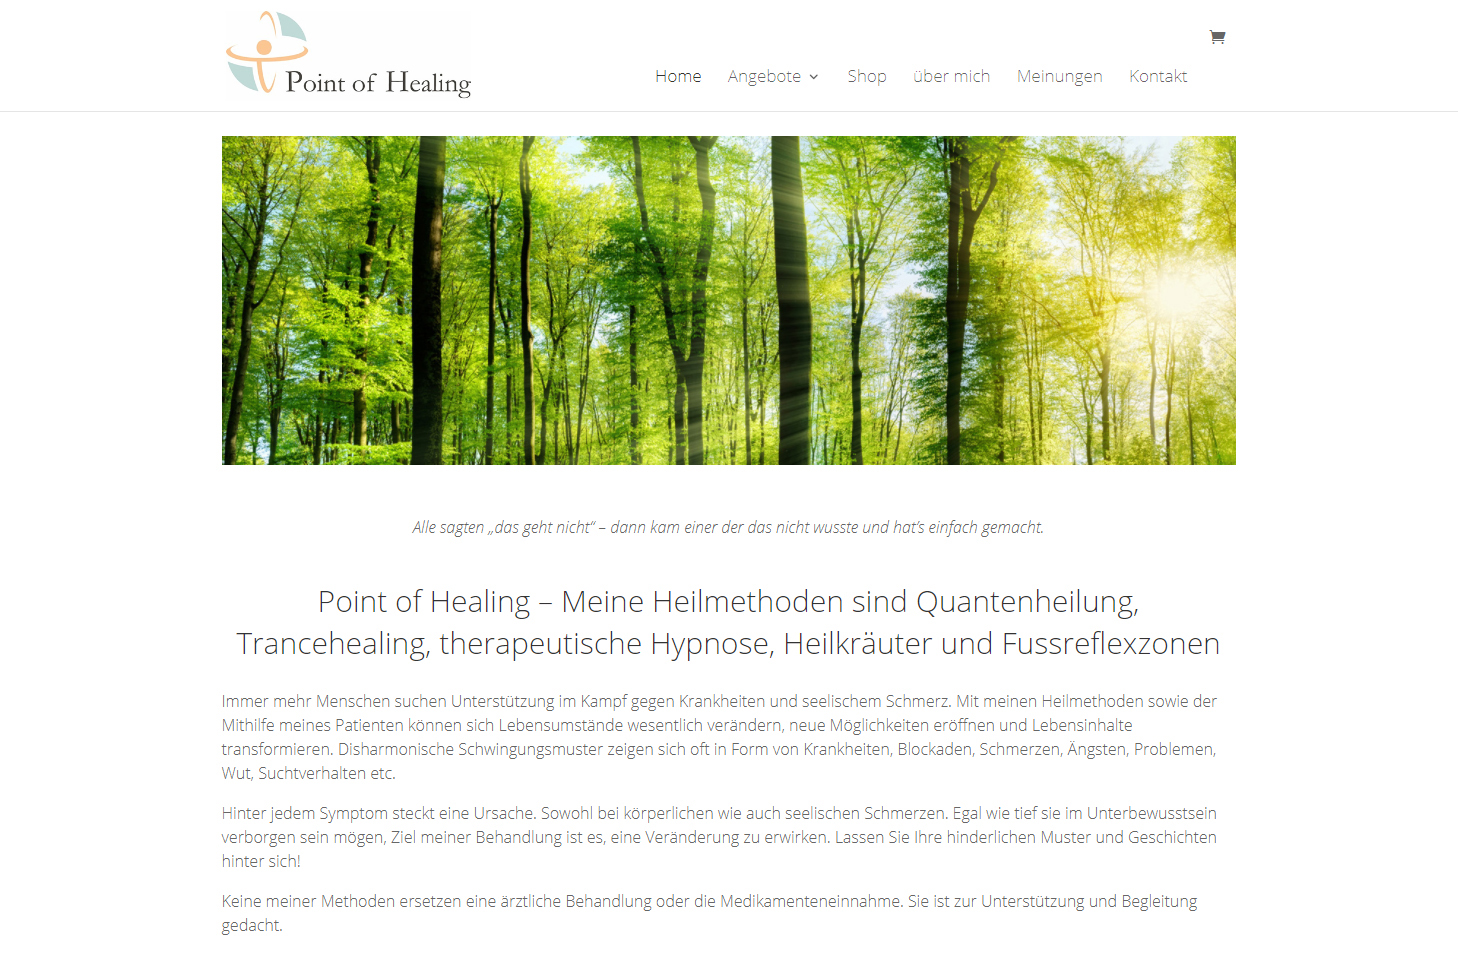 Point of Healing, Rotkreuz